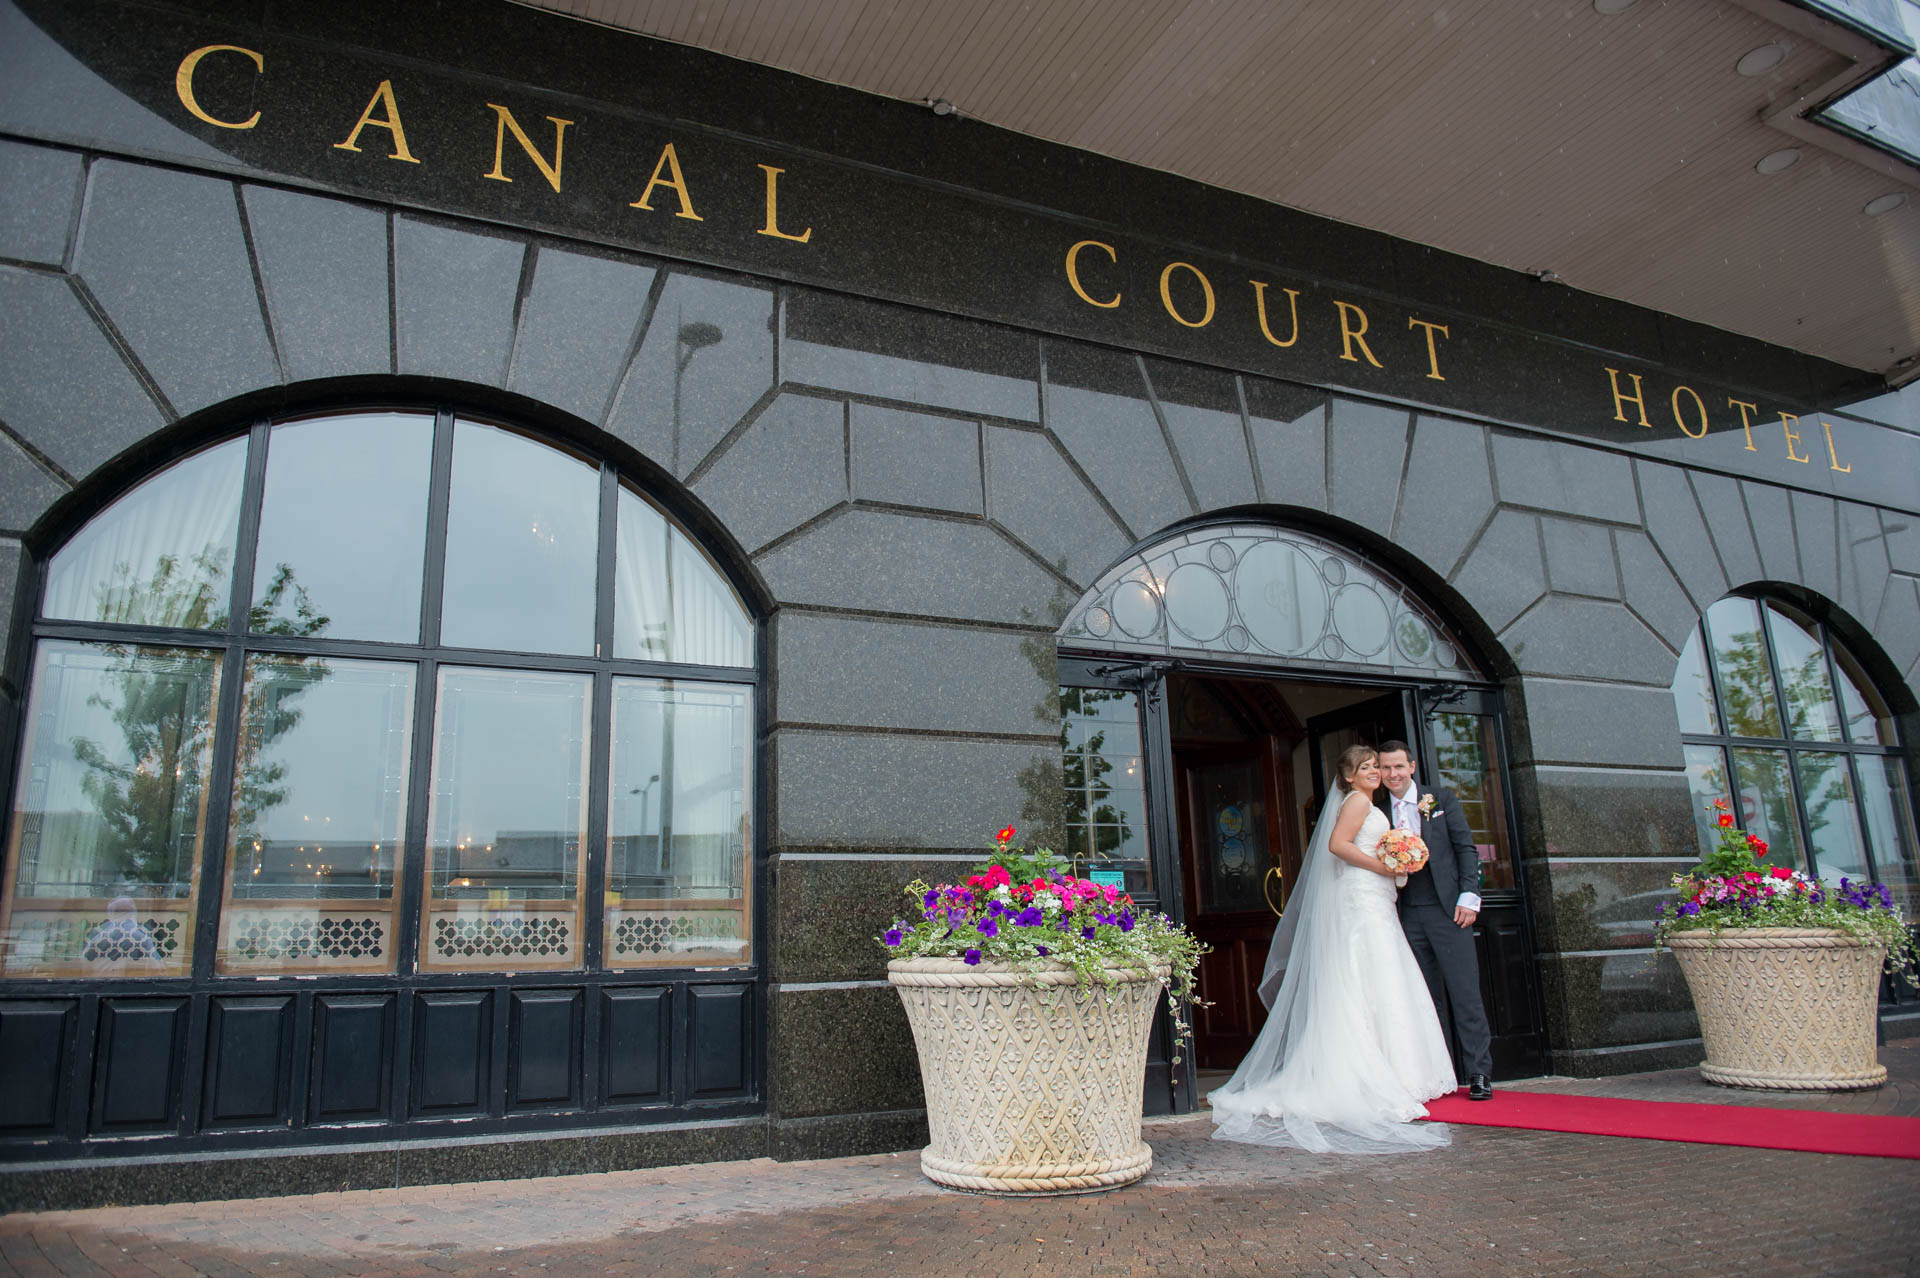 Picture of Ruth and Robert at Canal Court, Newry on their wedding day captured by Fermanagh, Tyrone and Northern Ireland Wedding Photographer, Trevor Lucy Photography